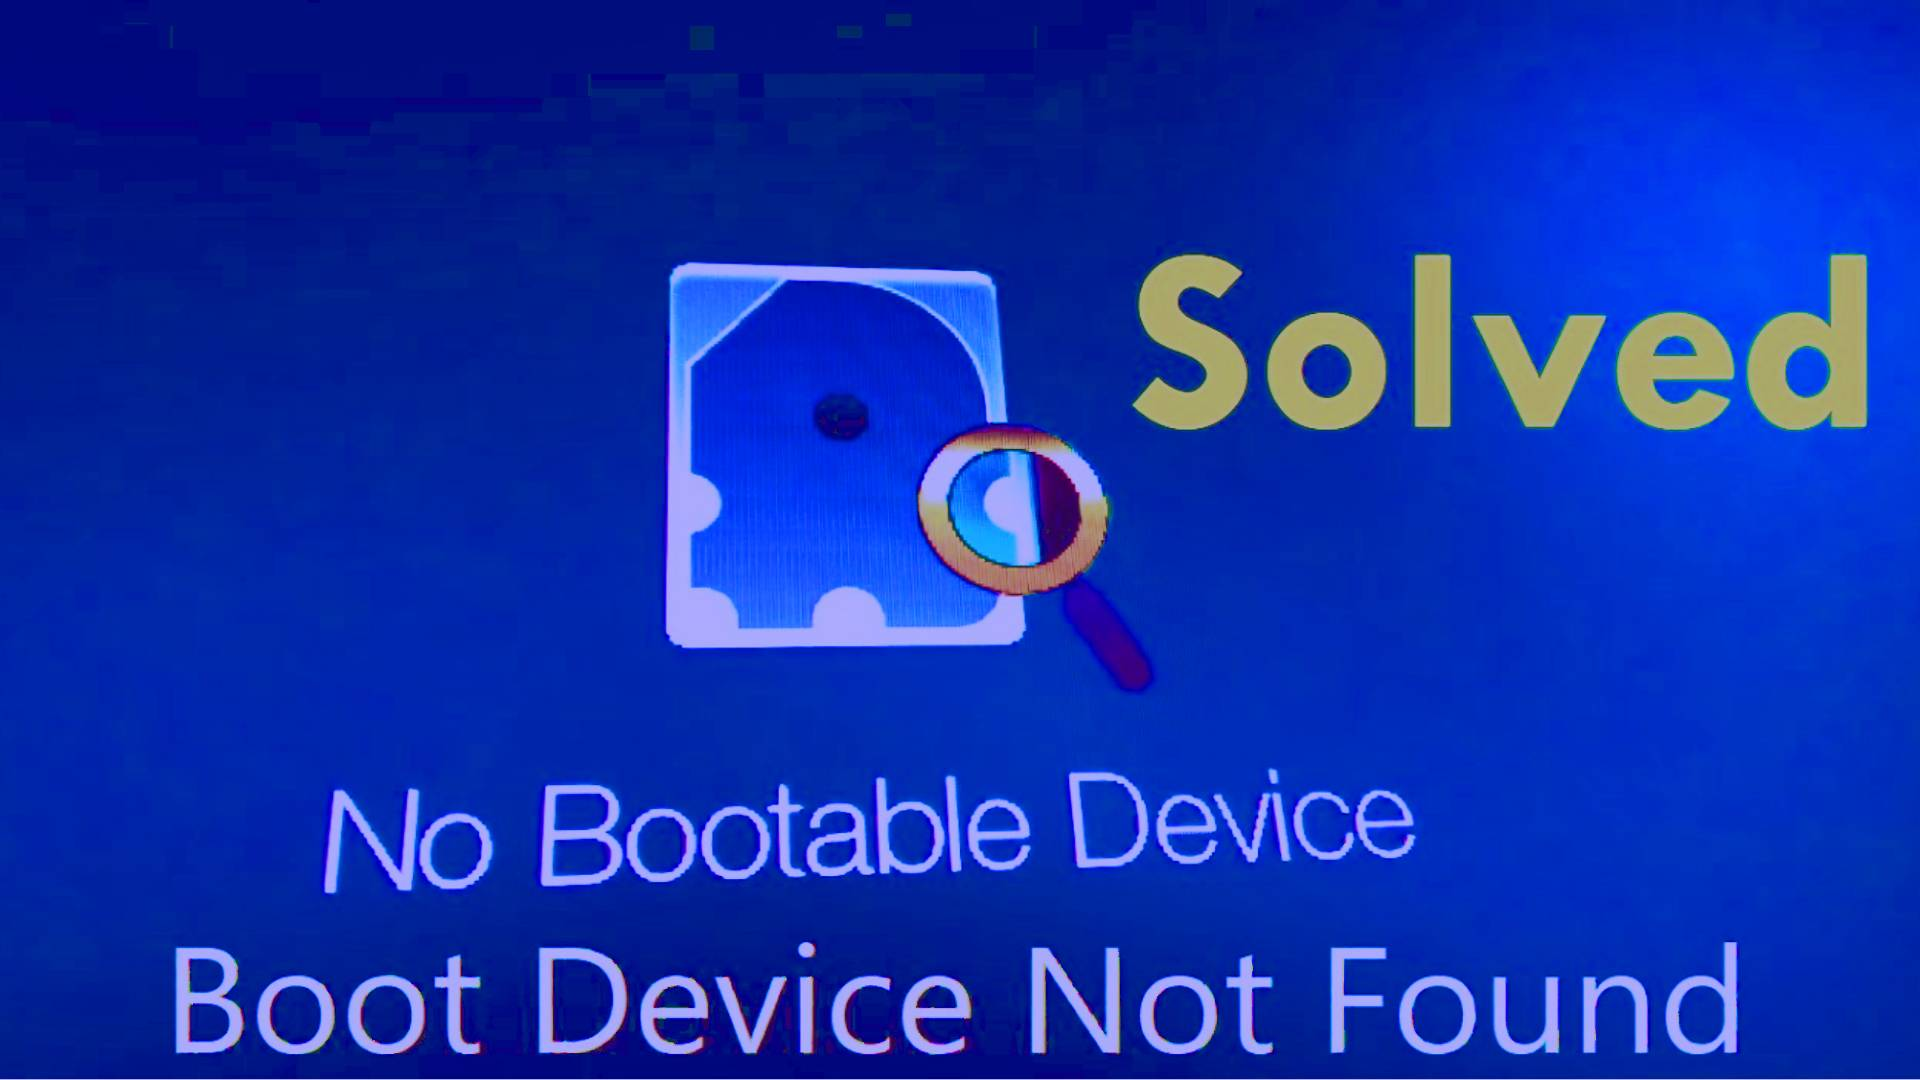 How to fix No Bootable Device in Laptop